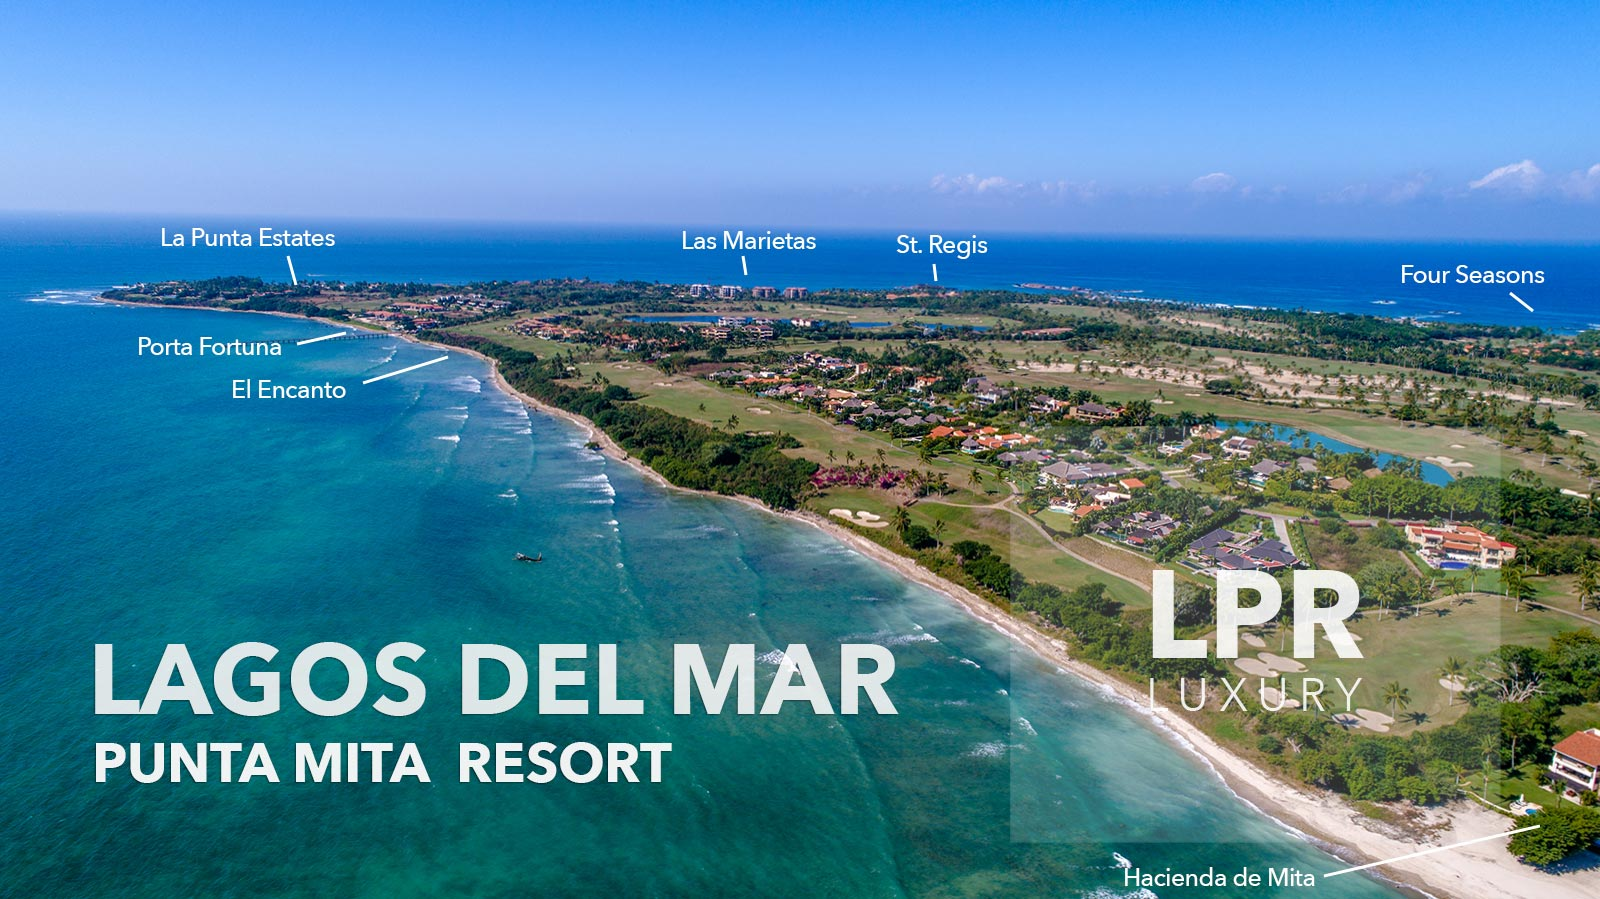 Explore the luxury golf villas of Lagos del Mar 20 at the ultra private Punta Mita Resort - Riviera Nayarit, Mexico